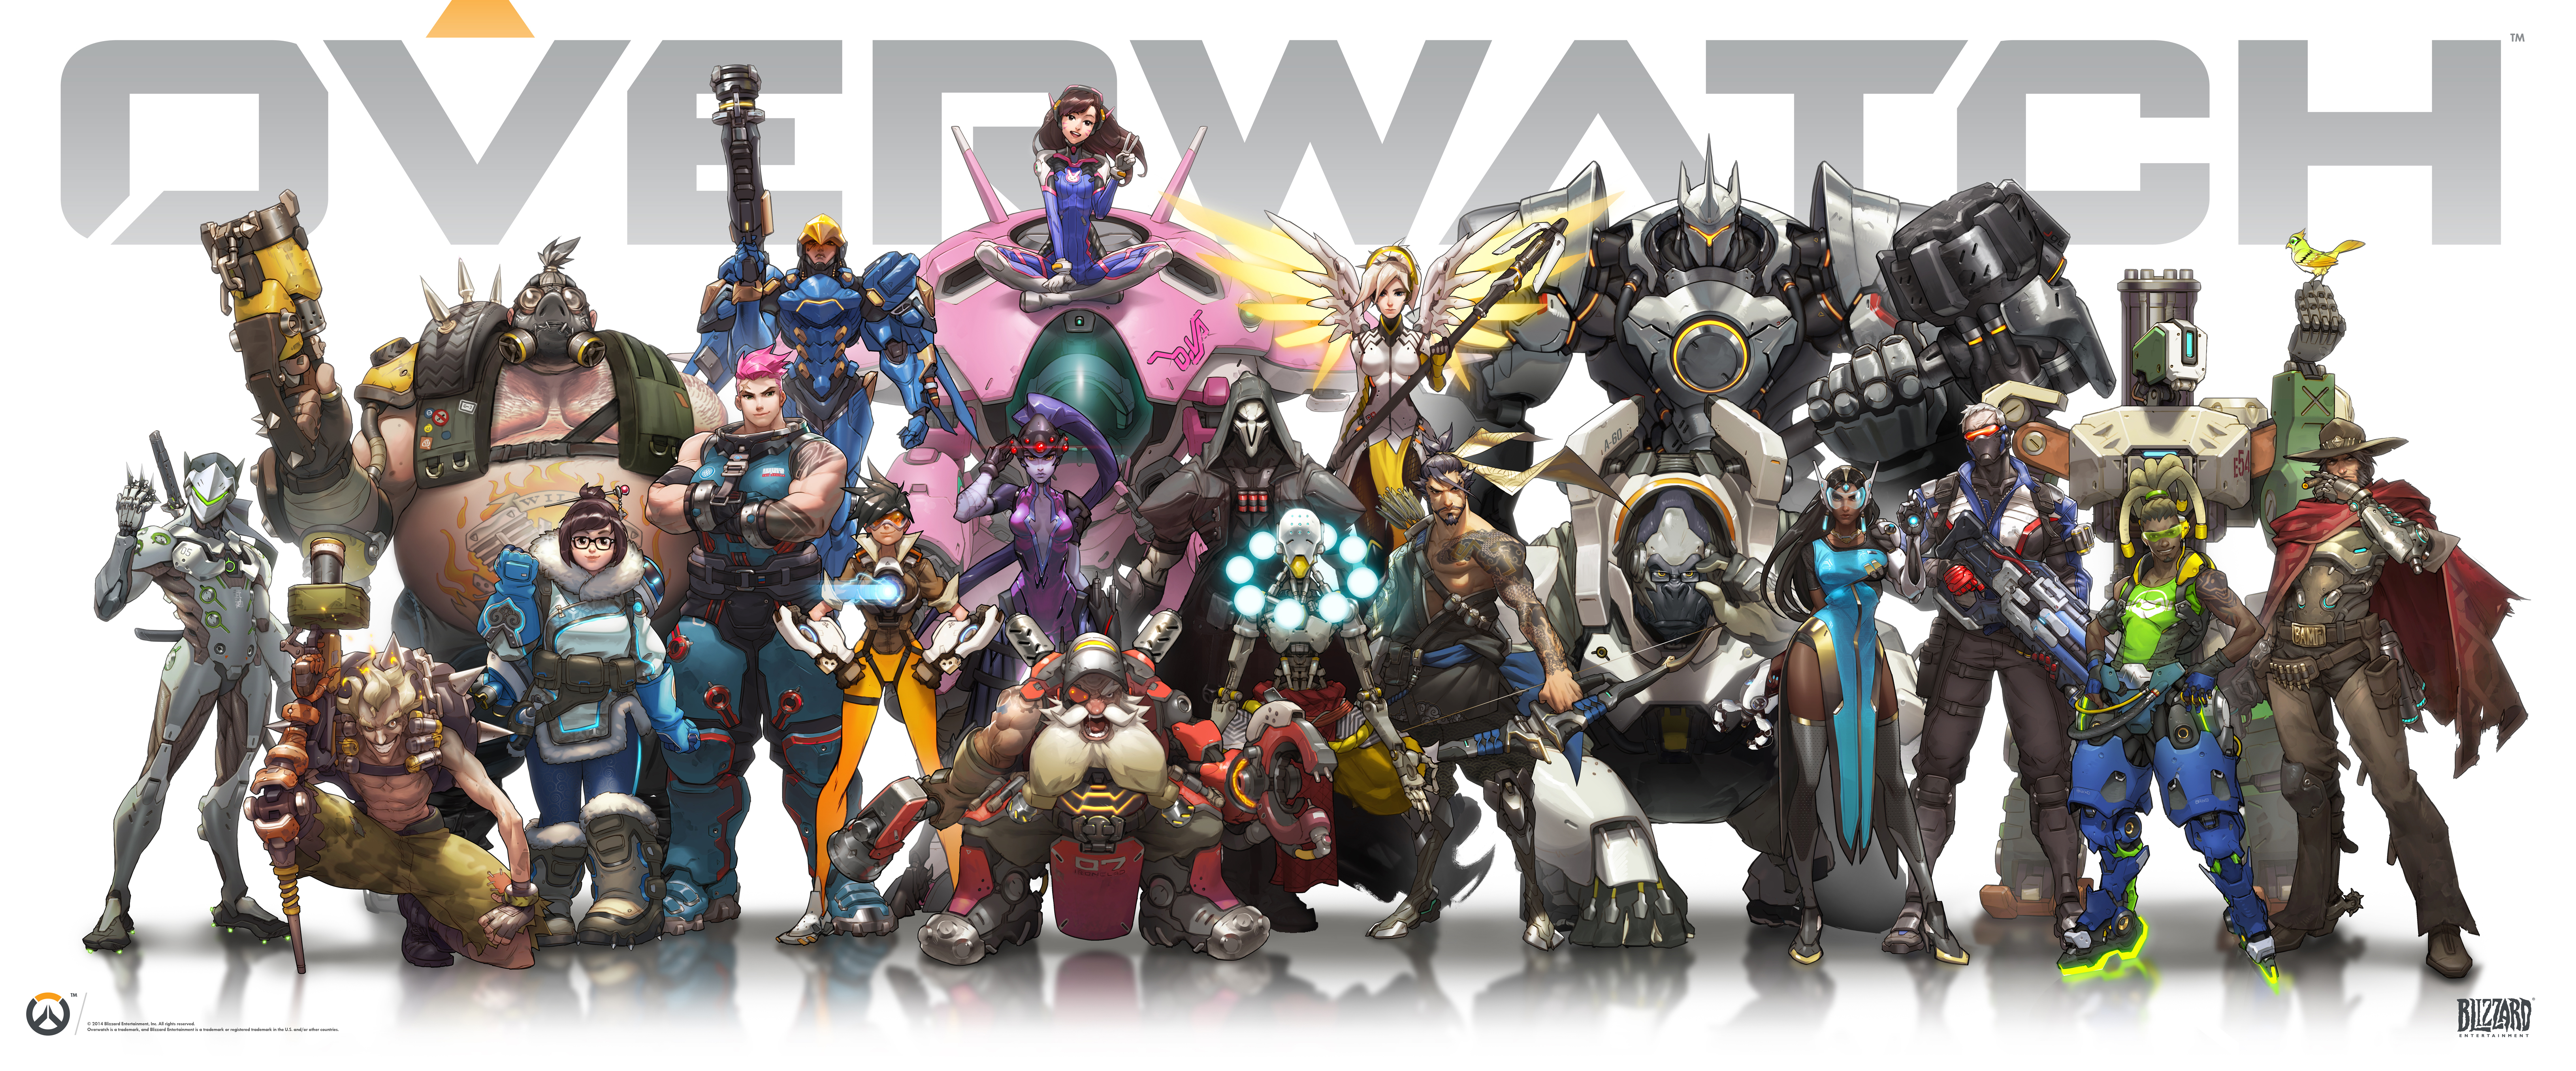 Overwatch® is a Global Hit with 7 Million Players—and